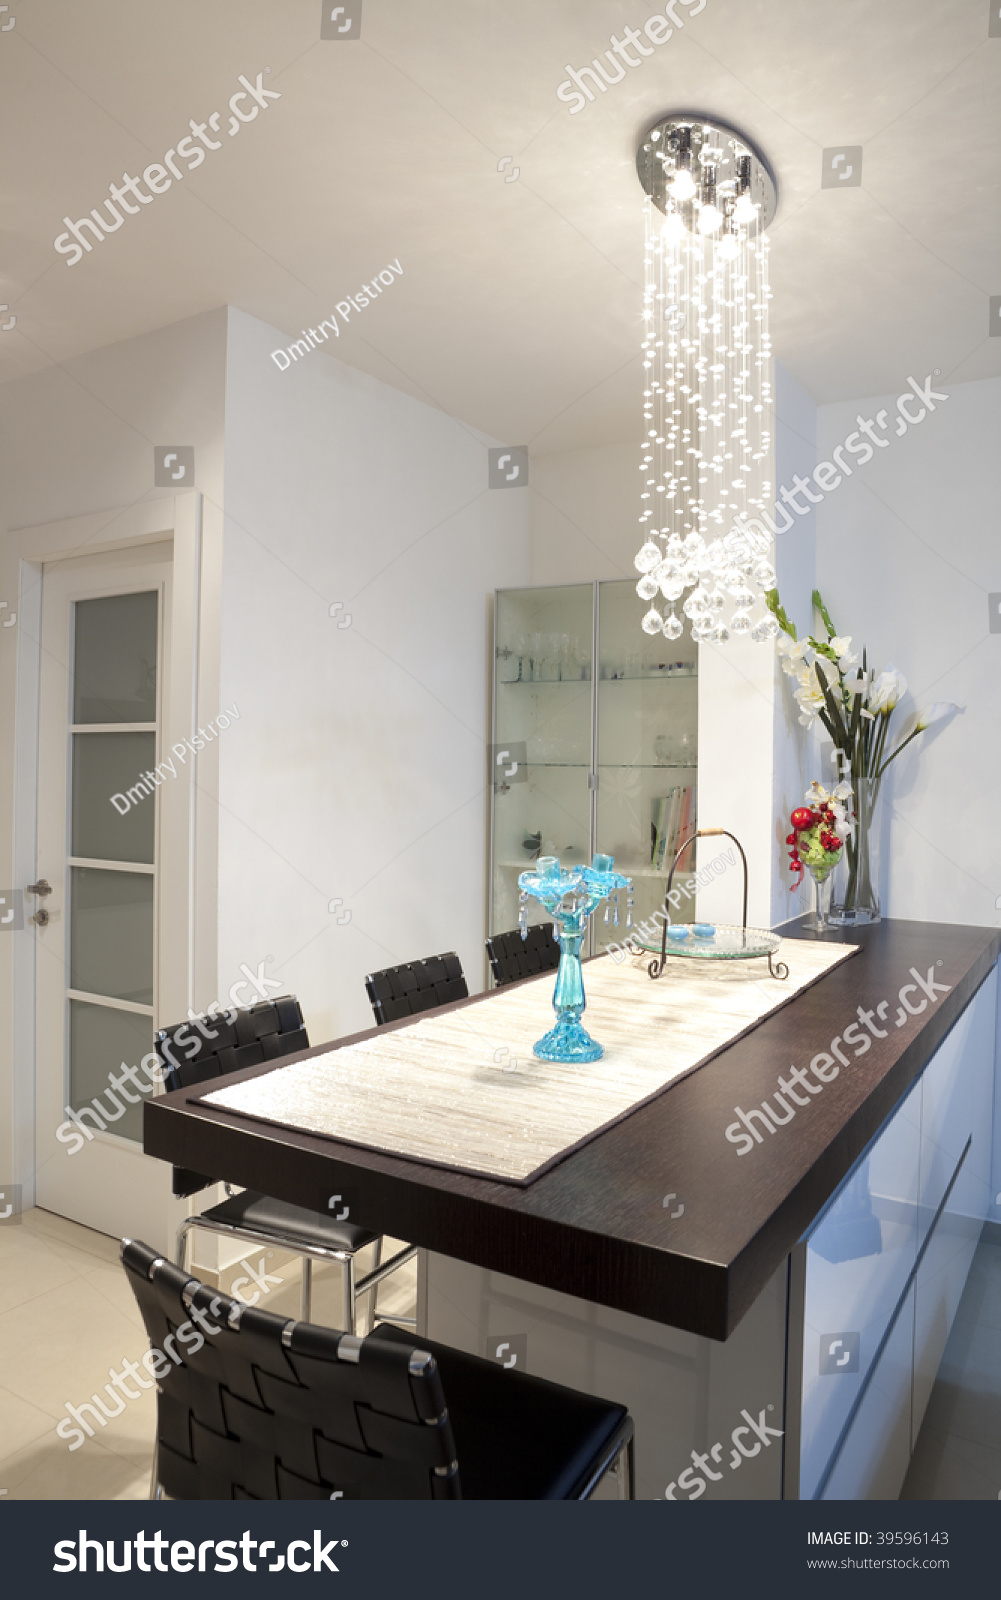 Modern Design Kitchen With White And Wood Elements Stock Photo 39596143 Shutterstock